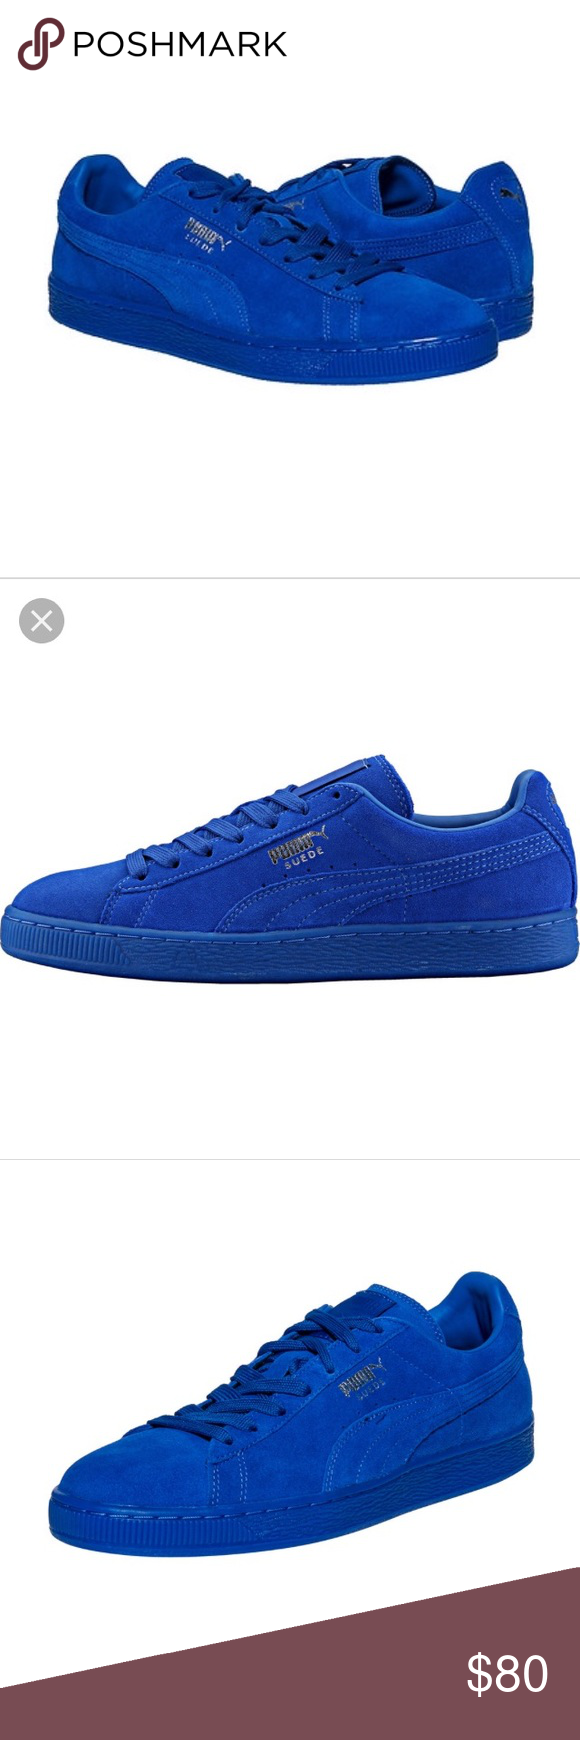 519c593f08b Puma classic suede ICED in royal blue This is a pair of Puma suede classic  ICED sneakers in royal blue. Worn only twice and only indoors